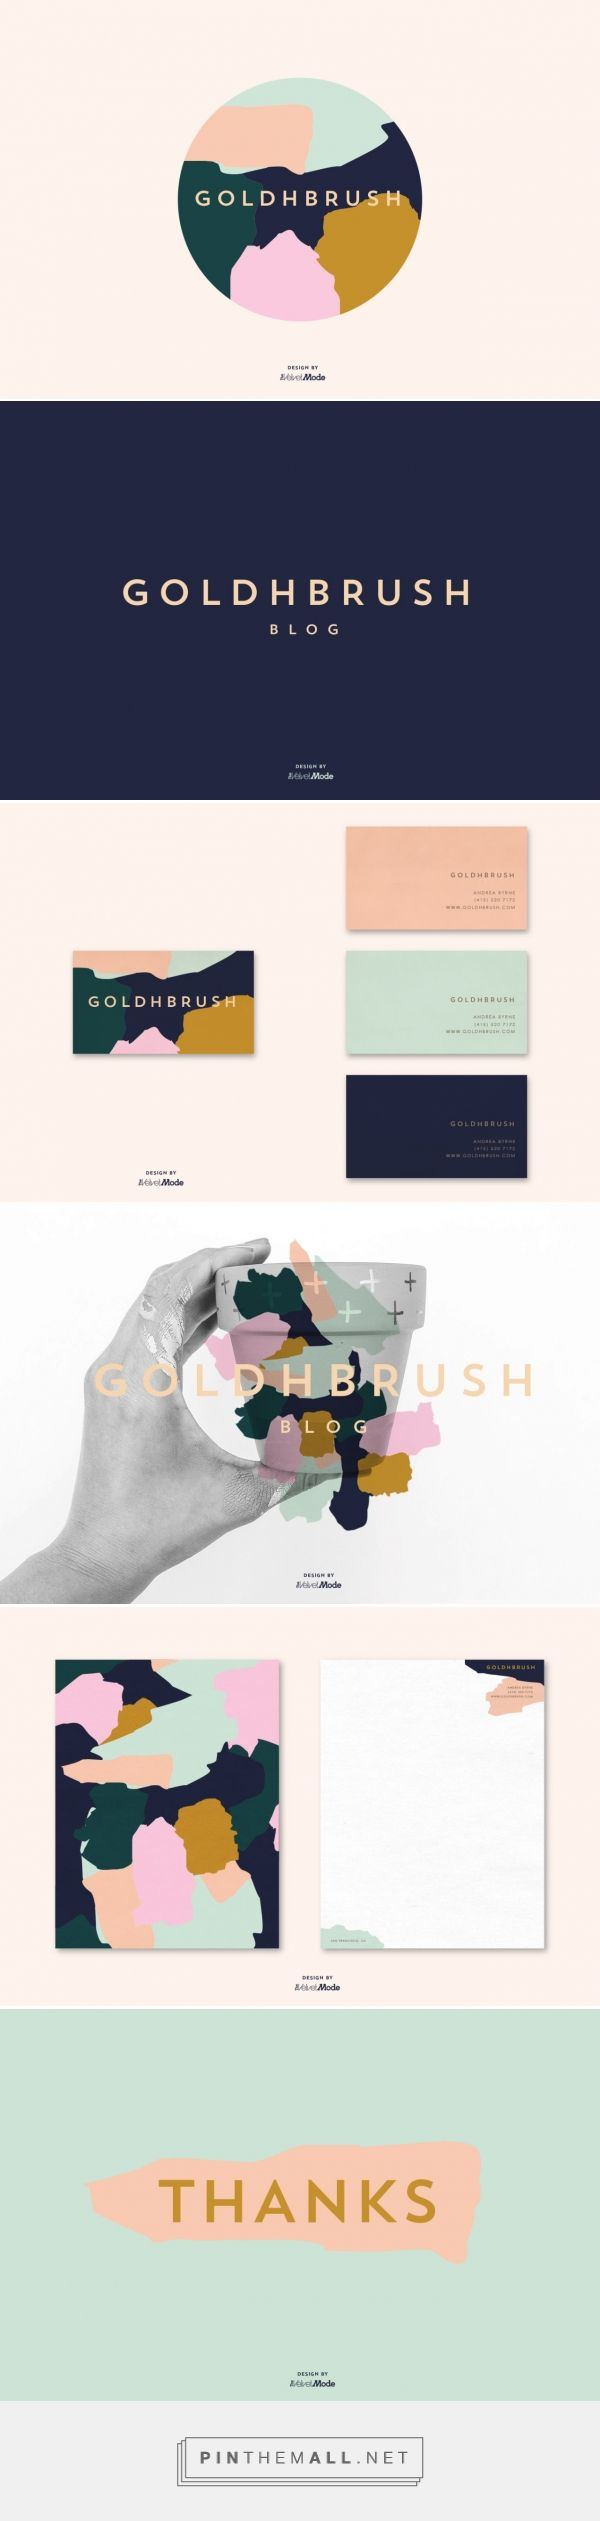 Branding for Goldhbrush Blog by The Velvet Mode in San Francisco.